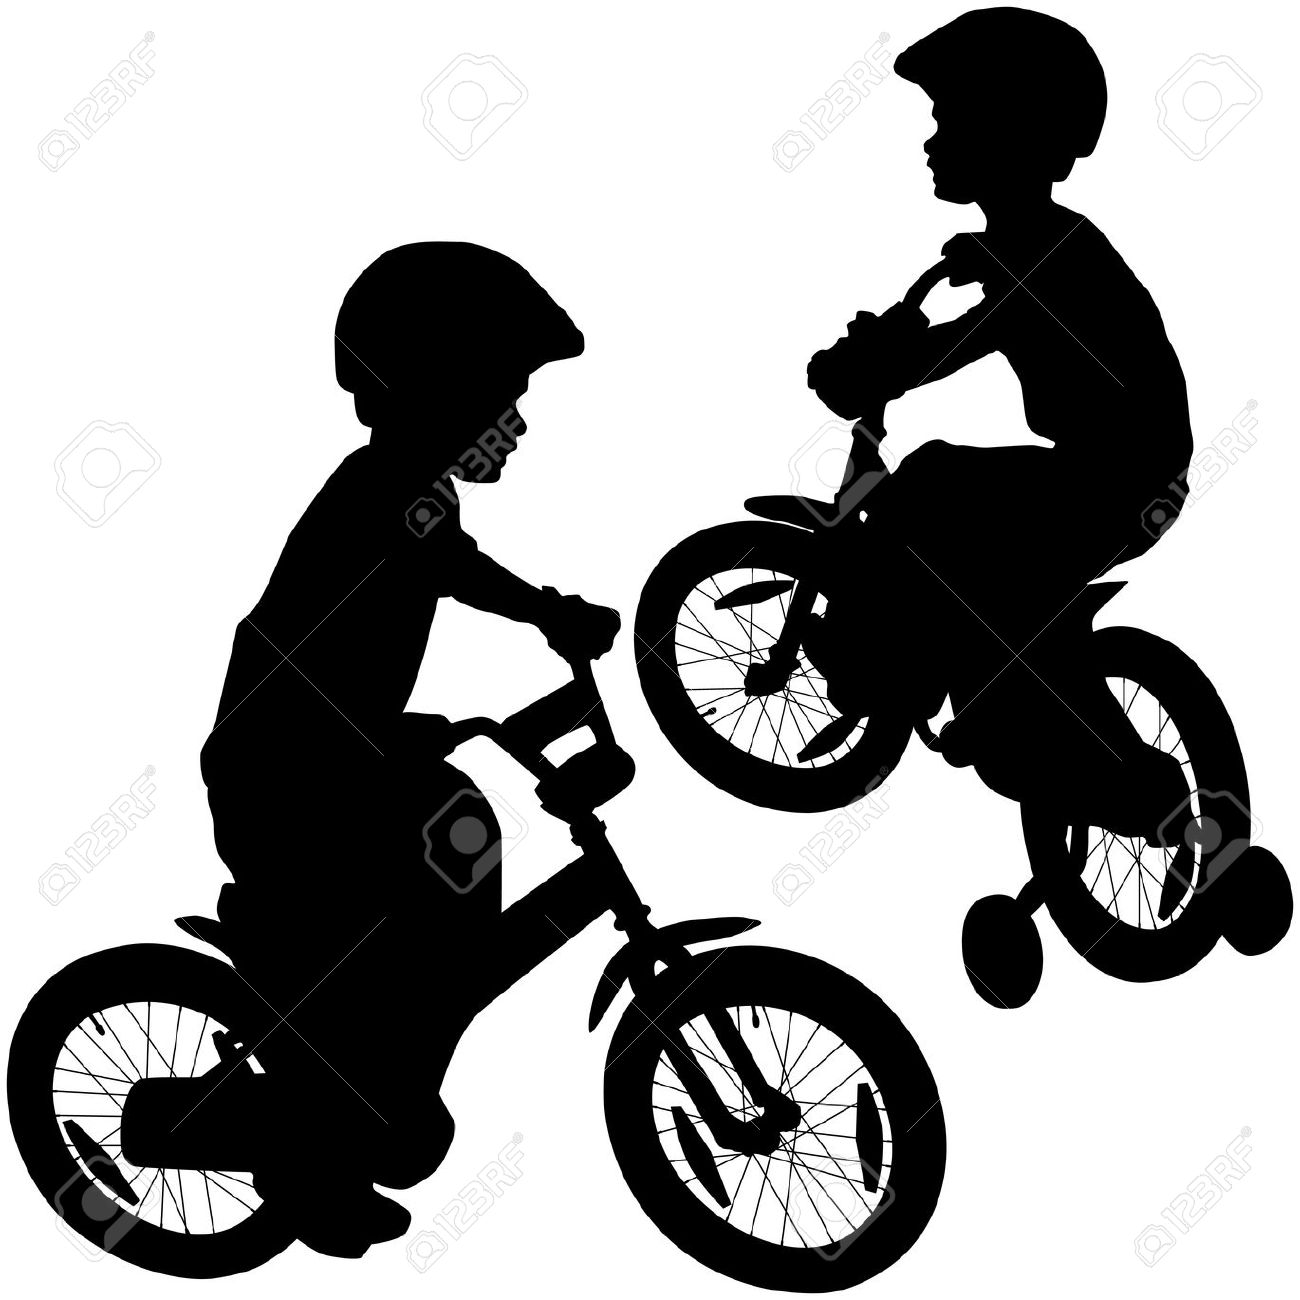 1300x1300 Boy Bicycle Silhouette Royalty Free Cliparts, Vectors,